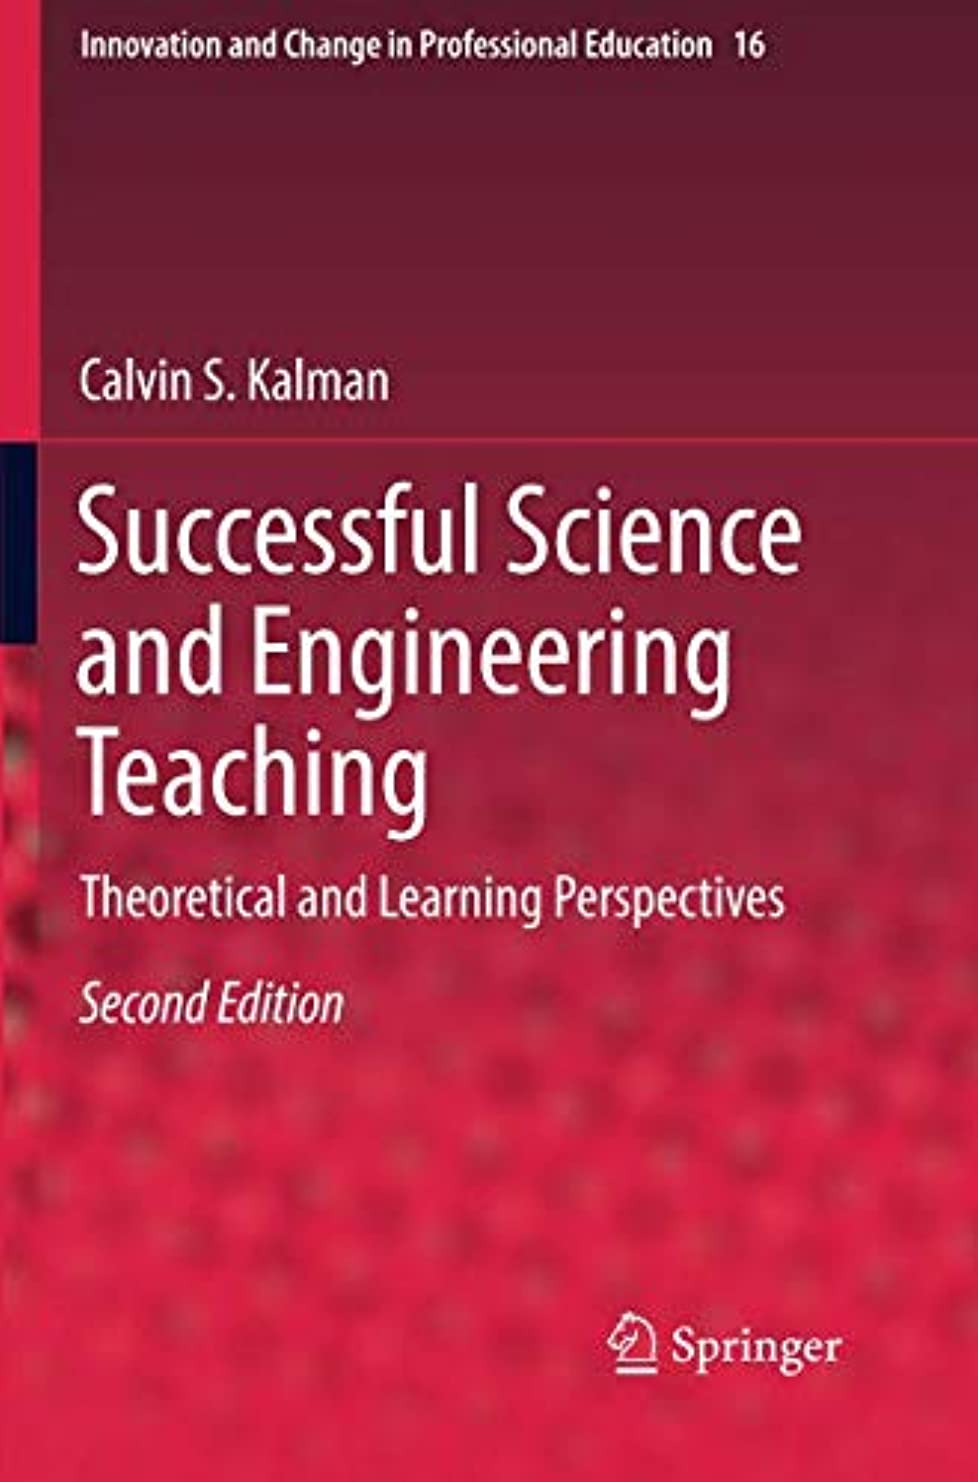 排泄するストラトフォードオンエイボン成人期Successful Science and Engineering Teaching: Theoretical and Learning Perspectives (Innovation and Change in Professional Education)